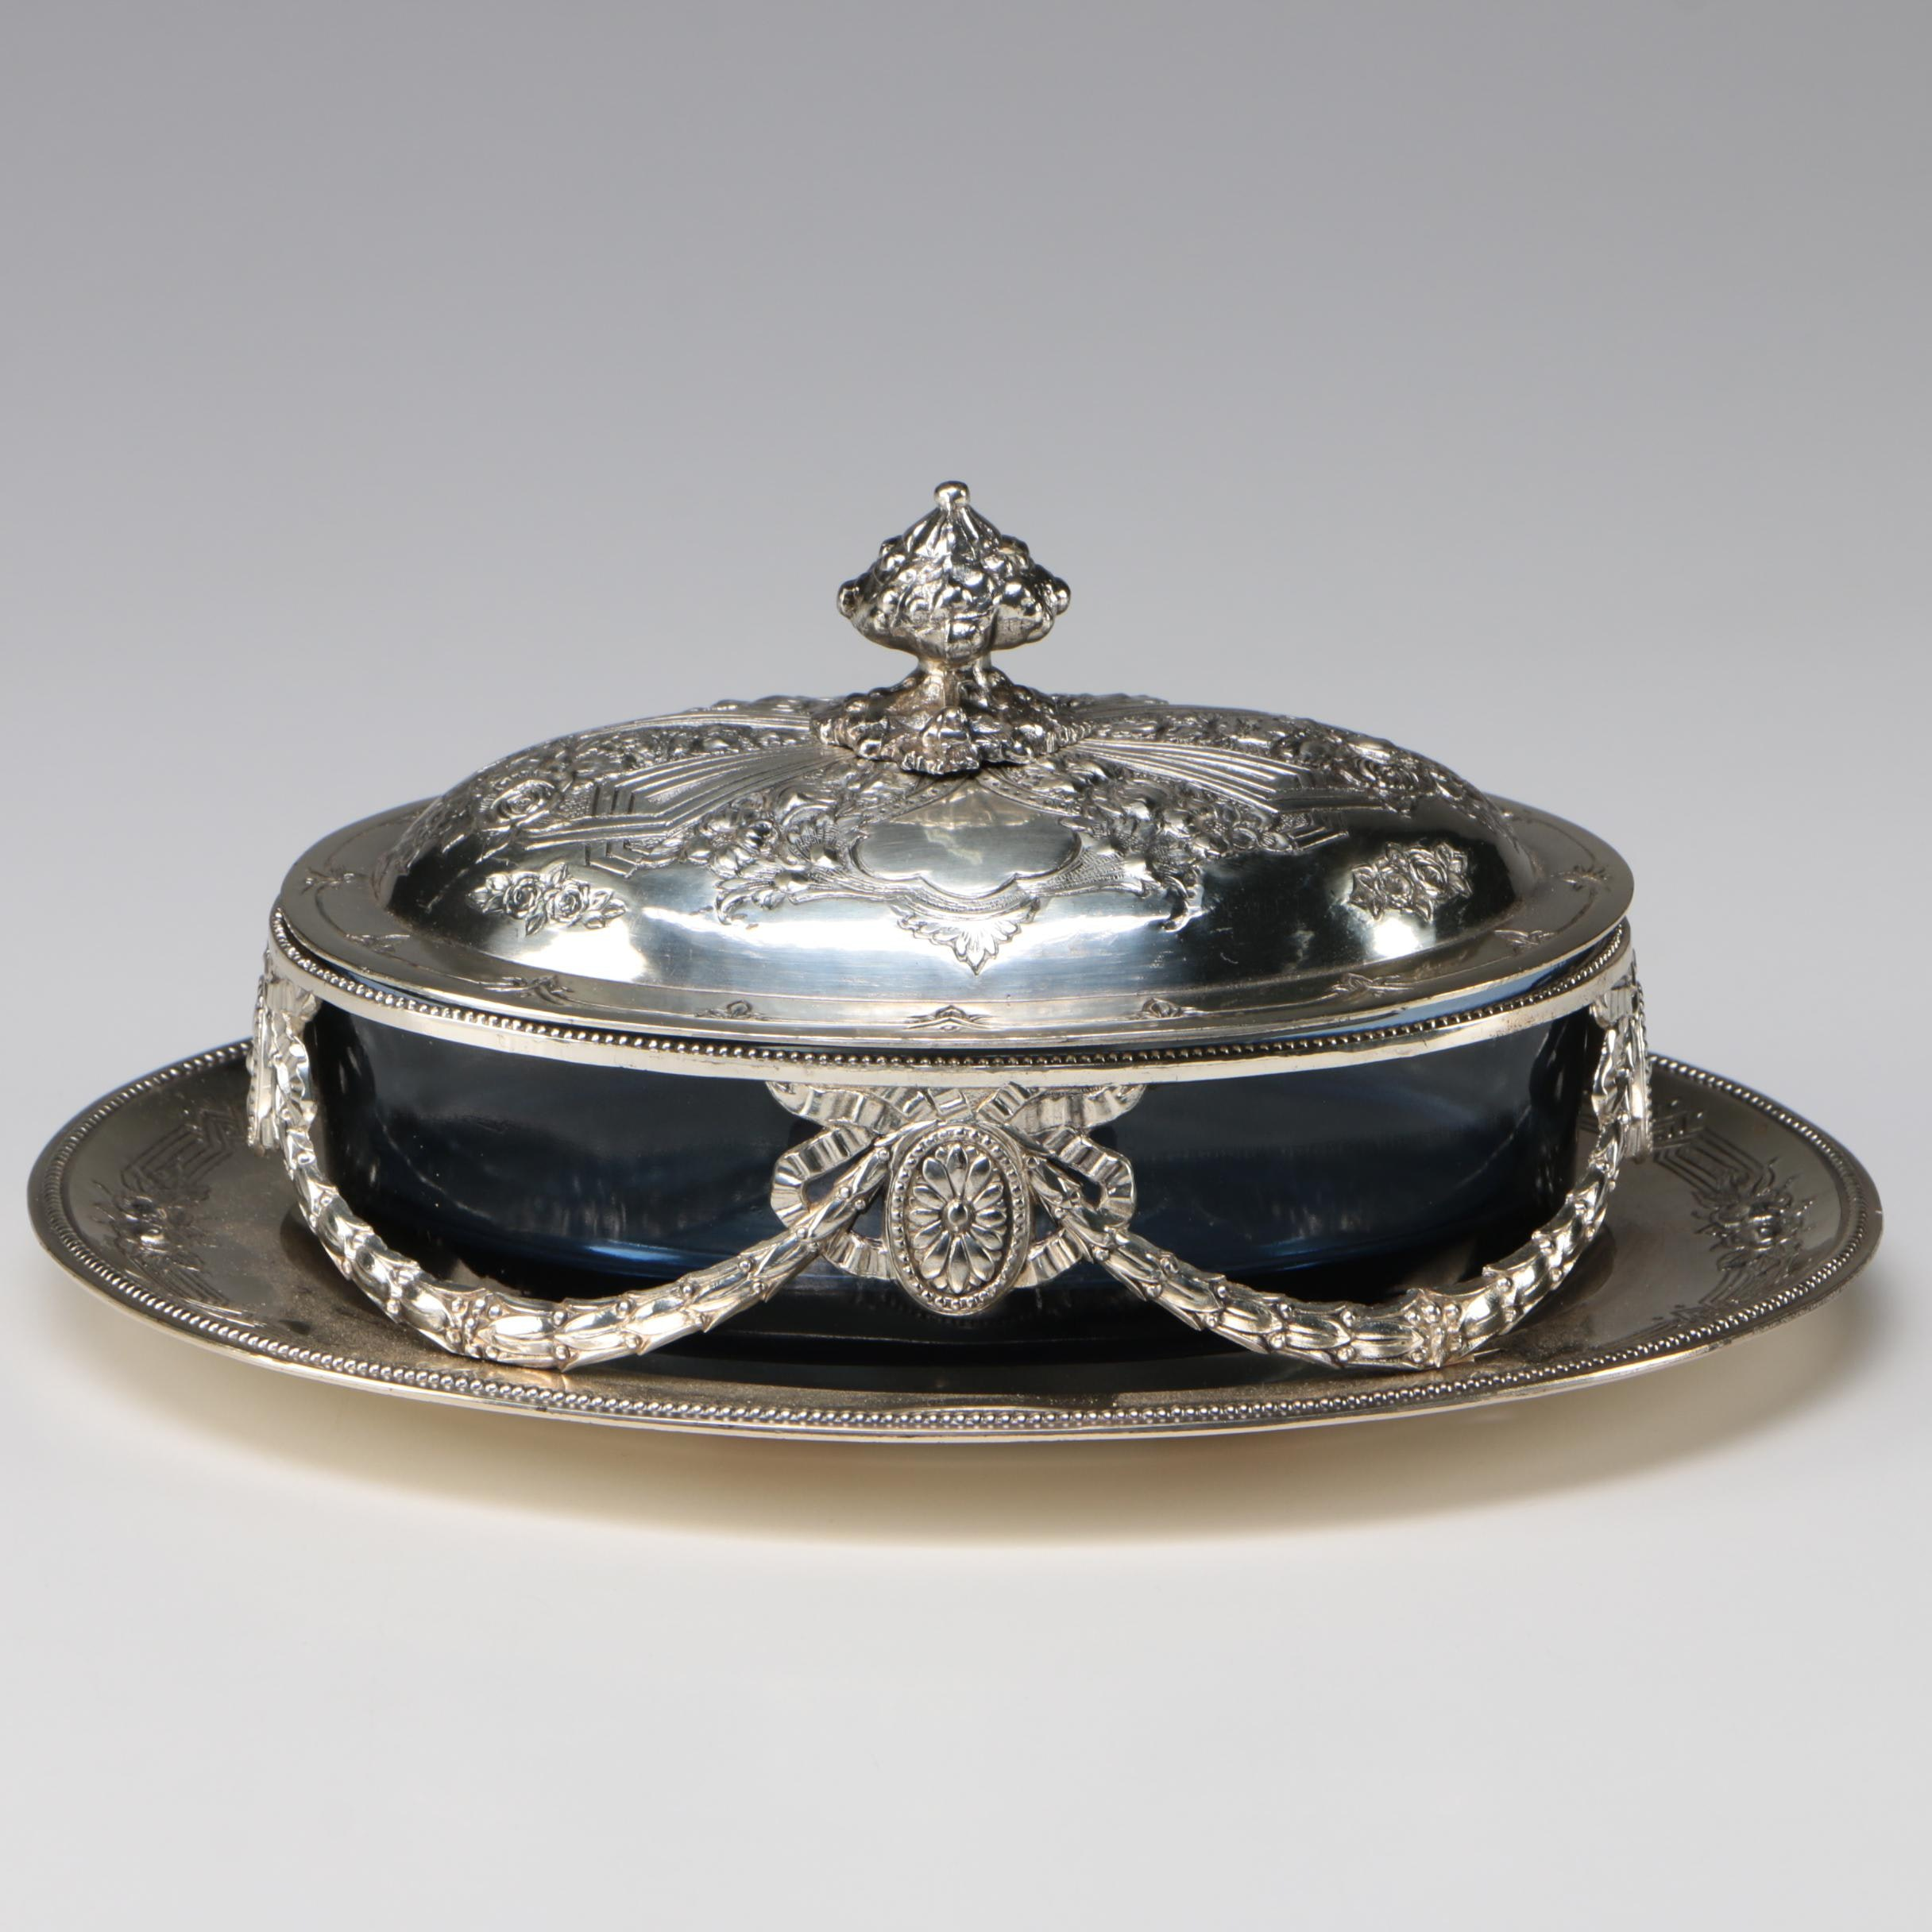 Corbell & Co. Neoclassical Silver Plate and Blue Glass Covered Dish